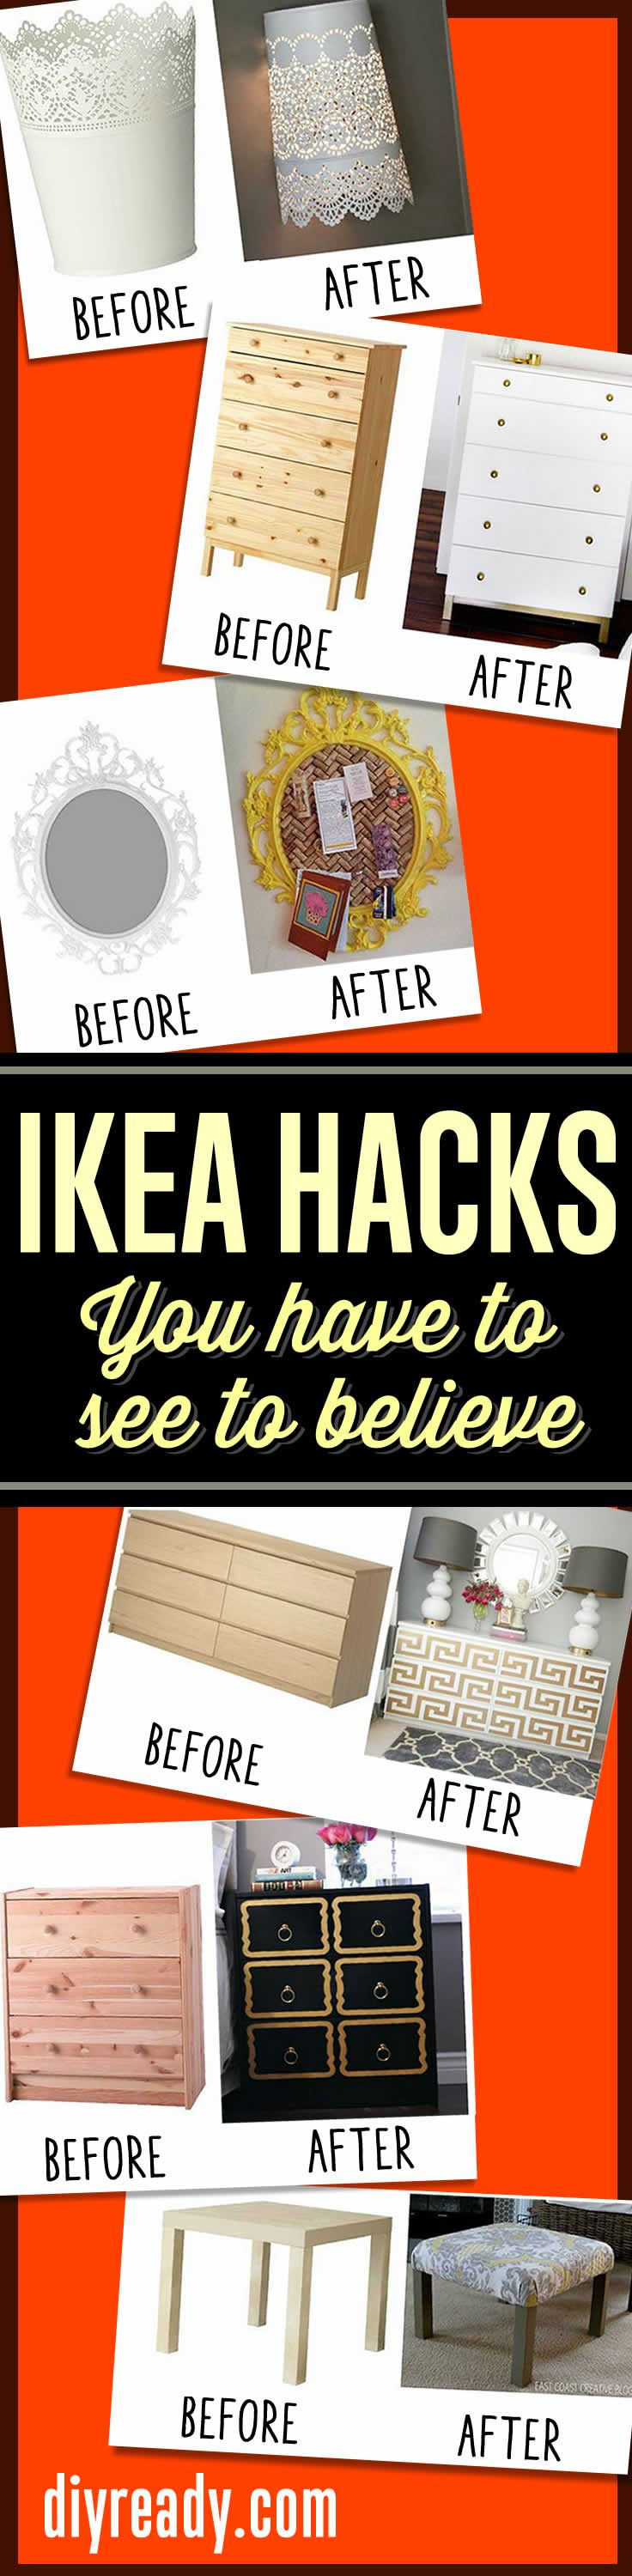 86 best images about Ikea on Pinterest